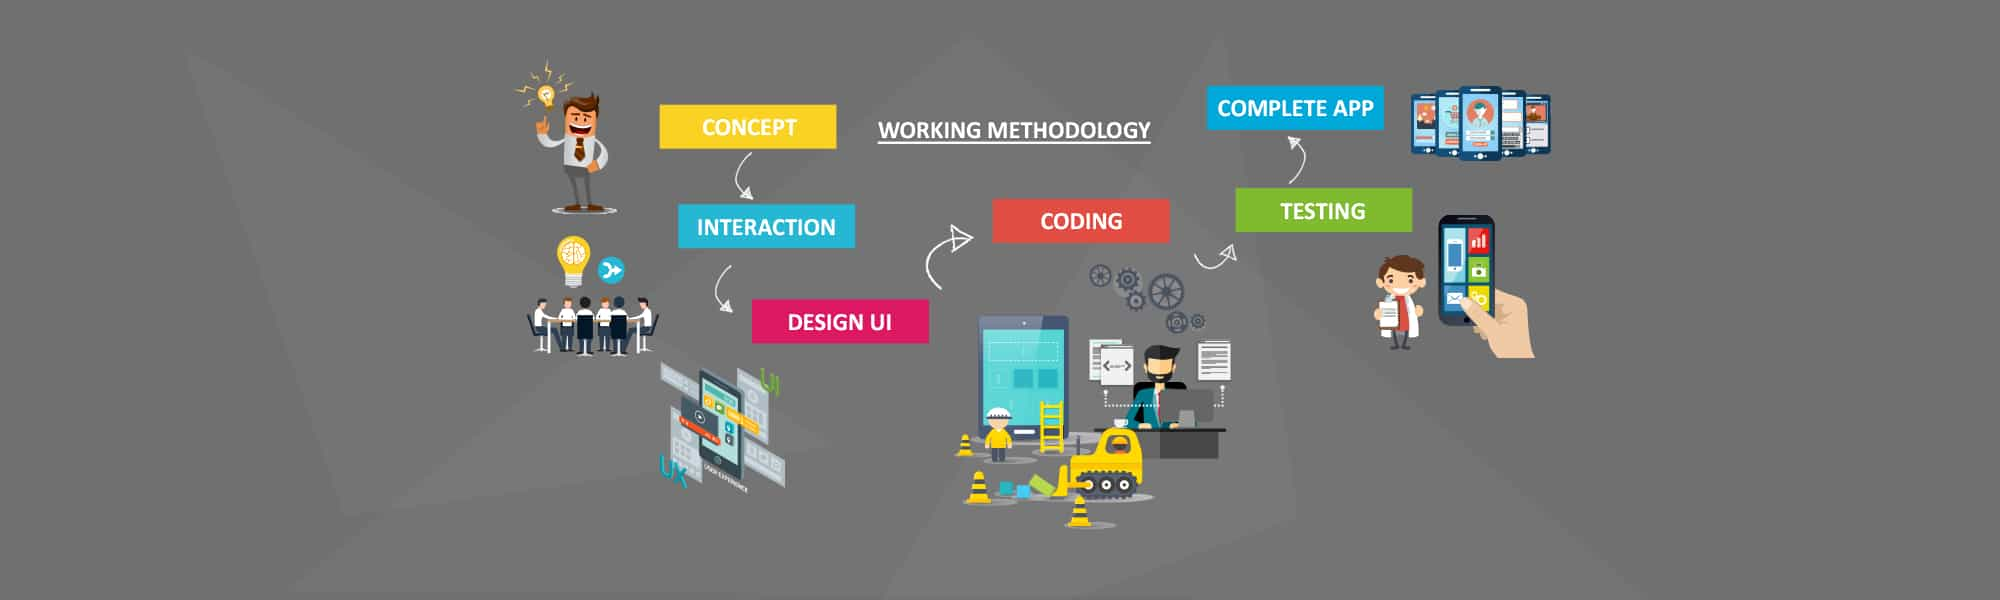 Working Methodology